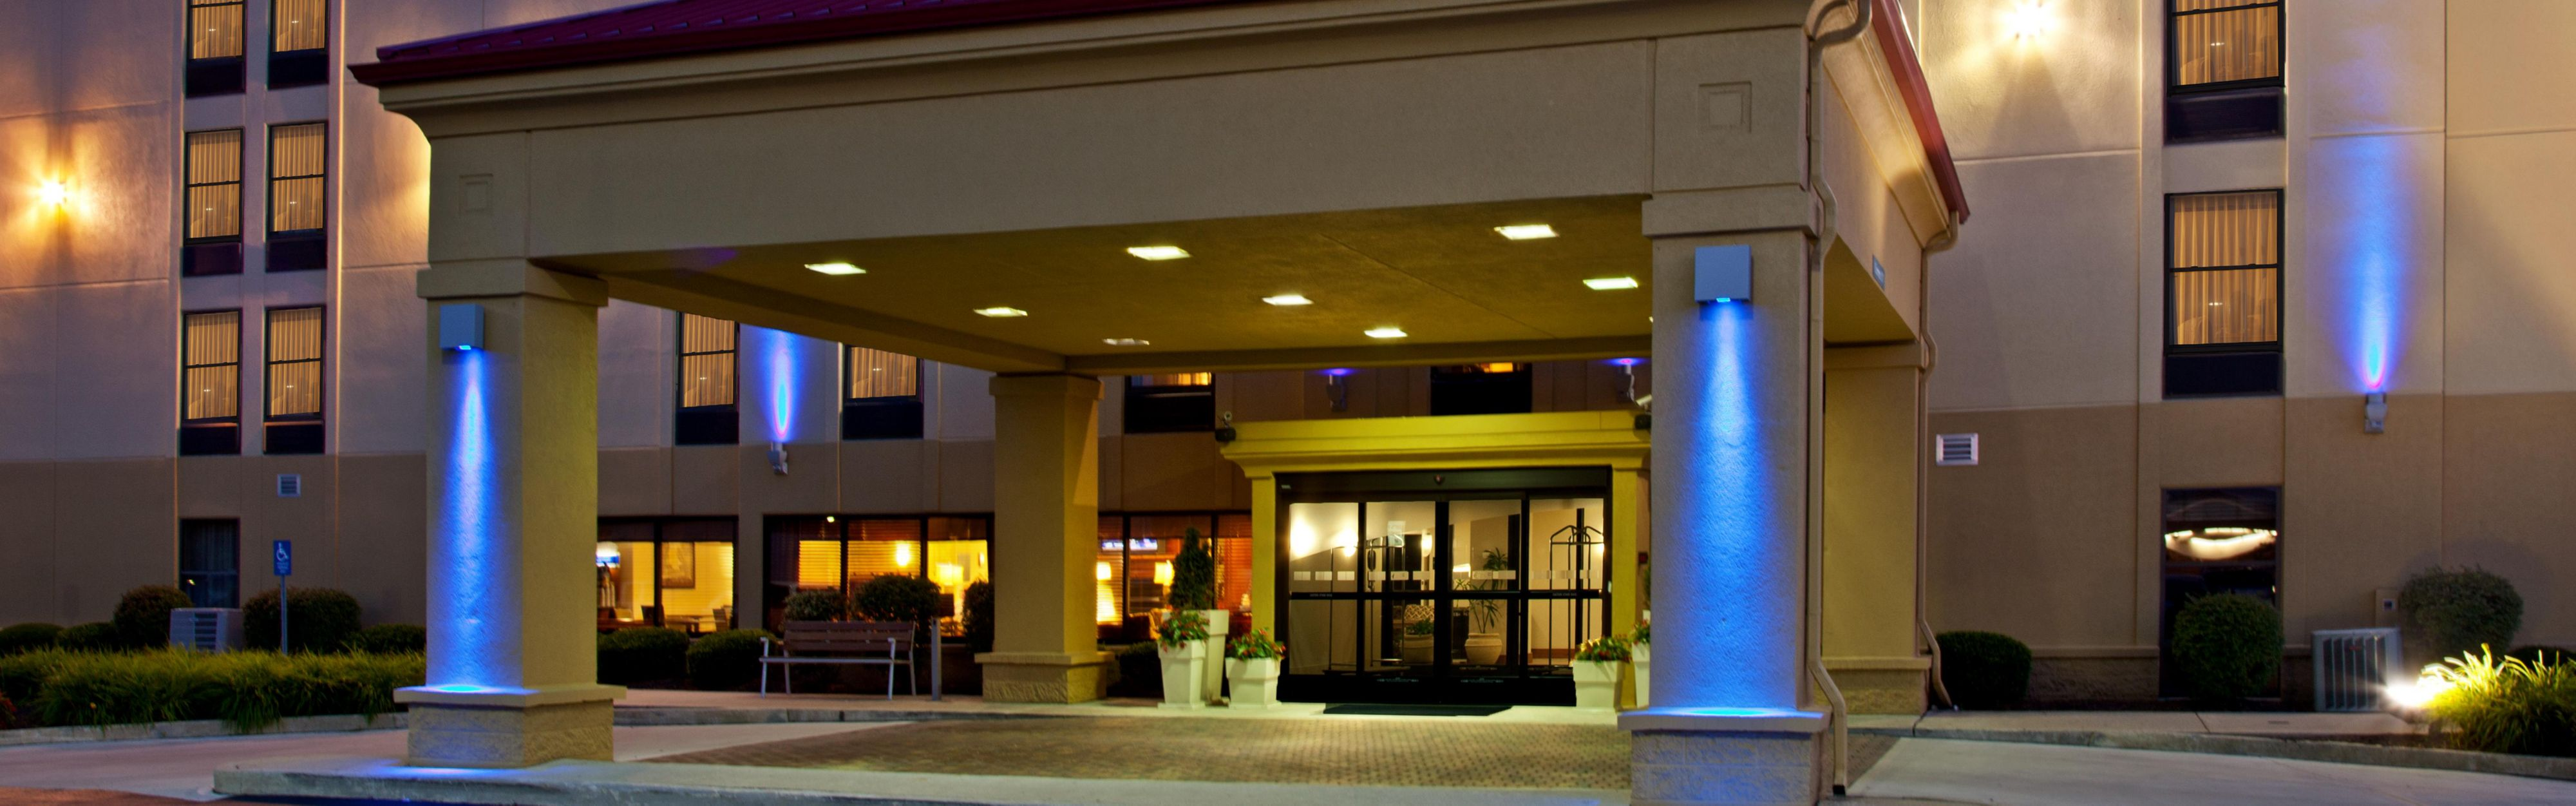 Hotels And Motels In Indianapolis